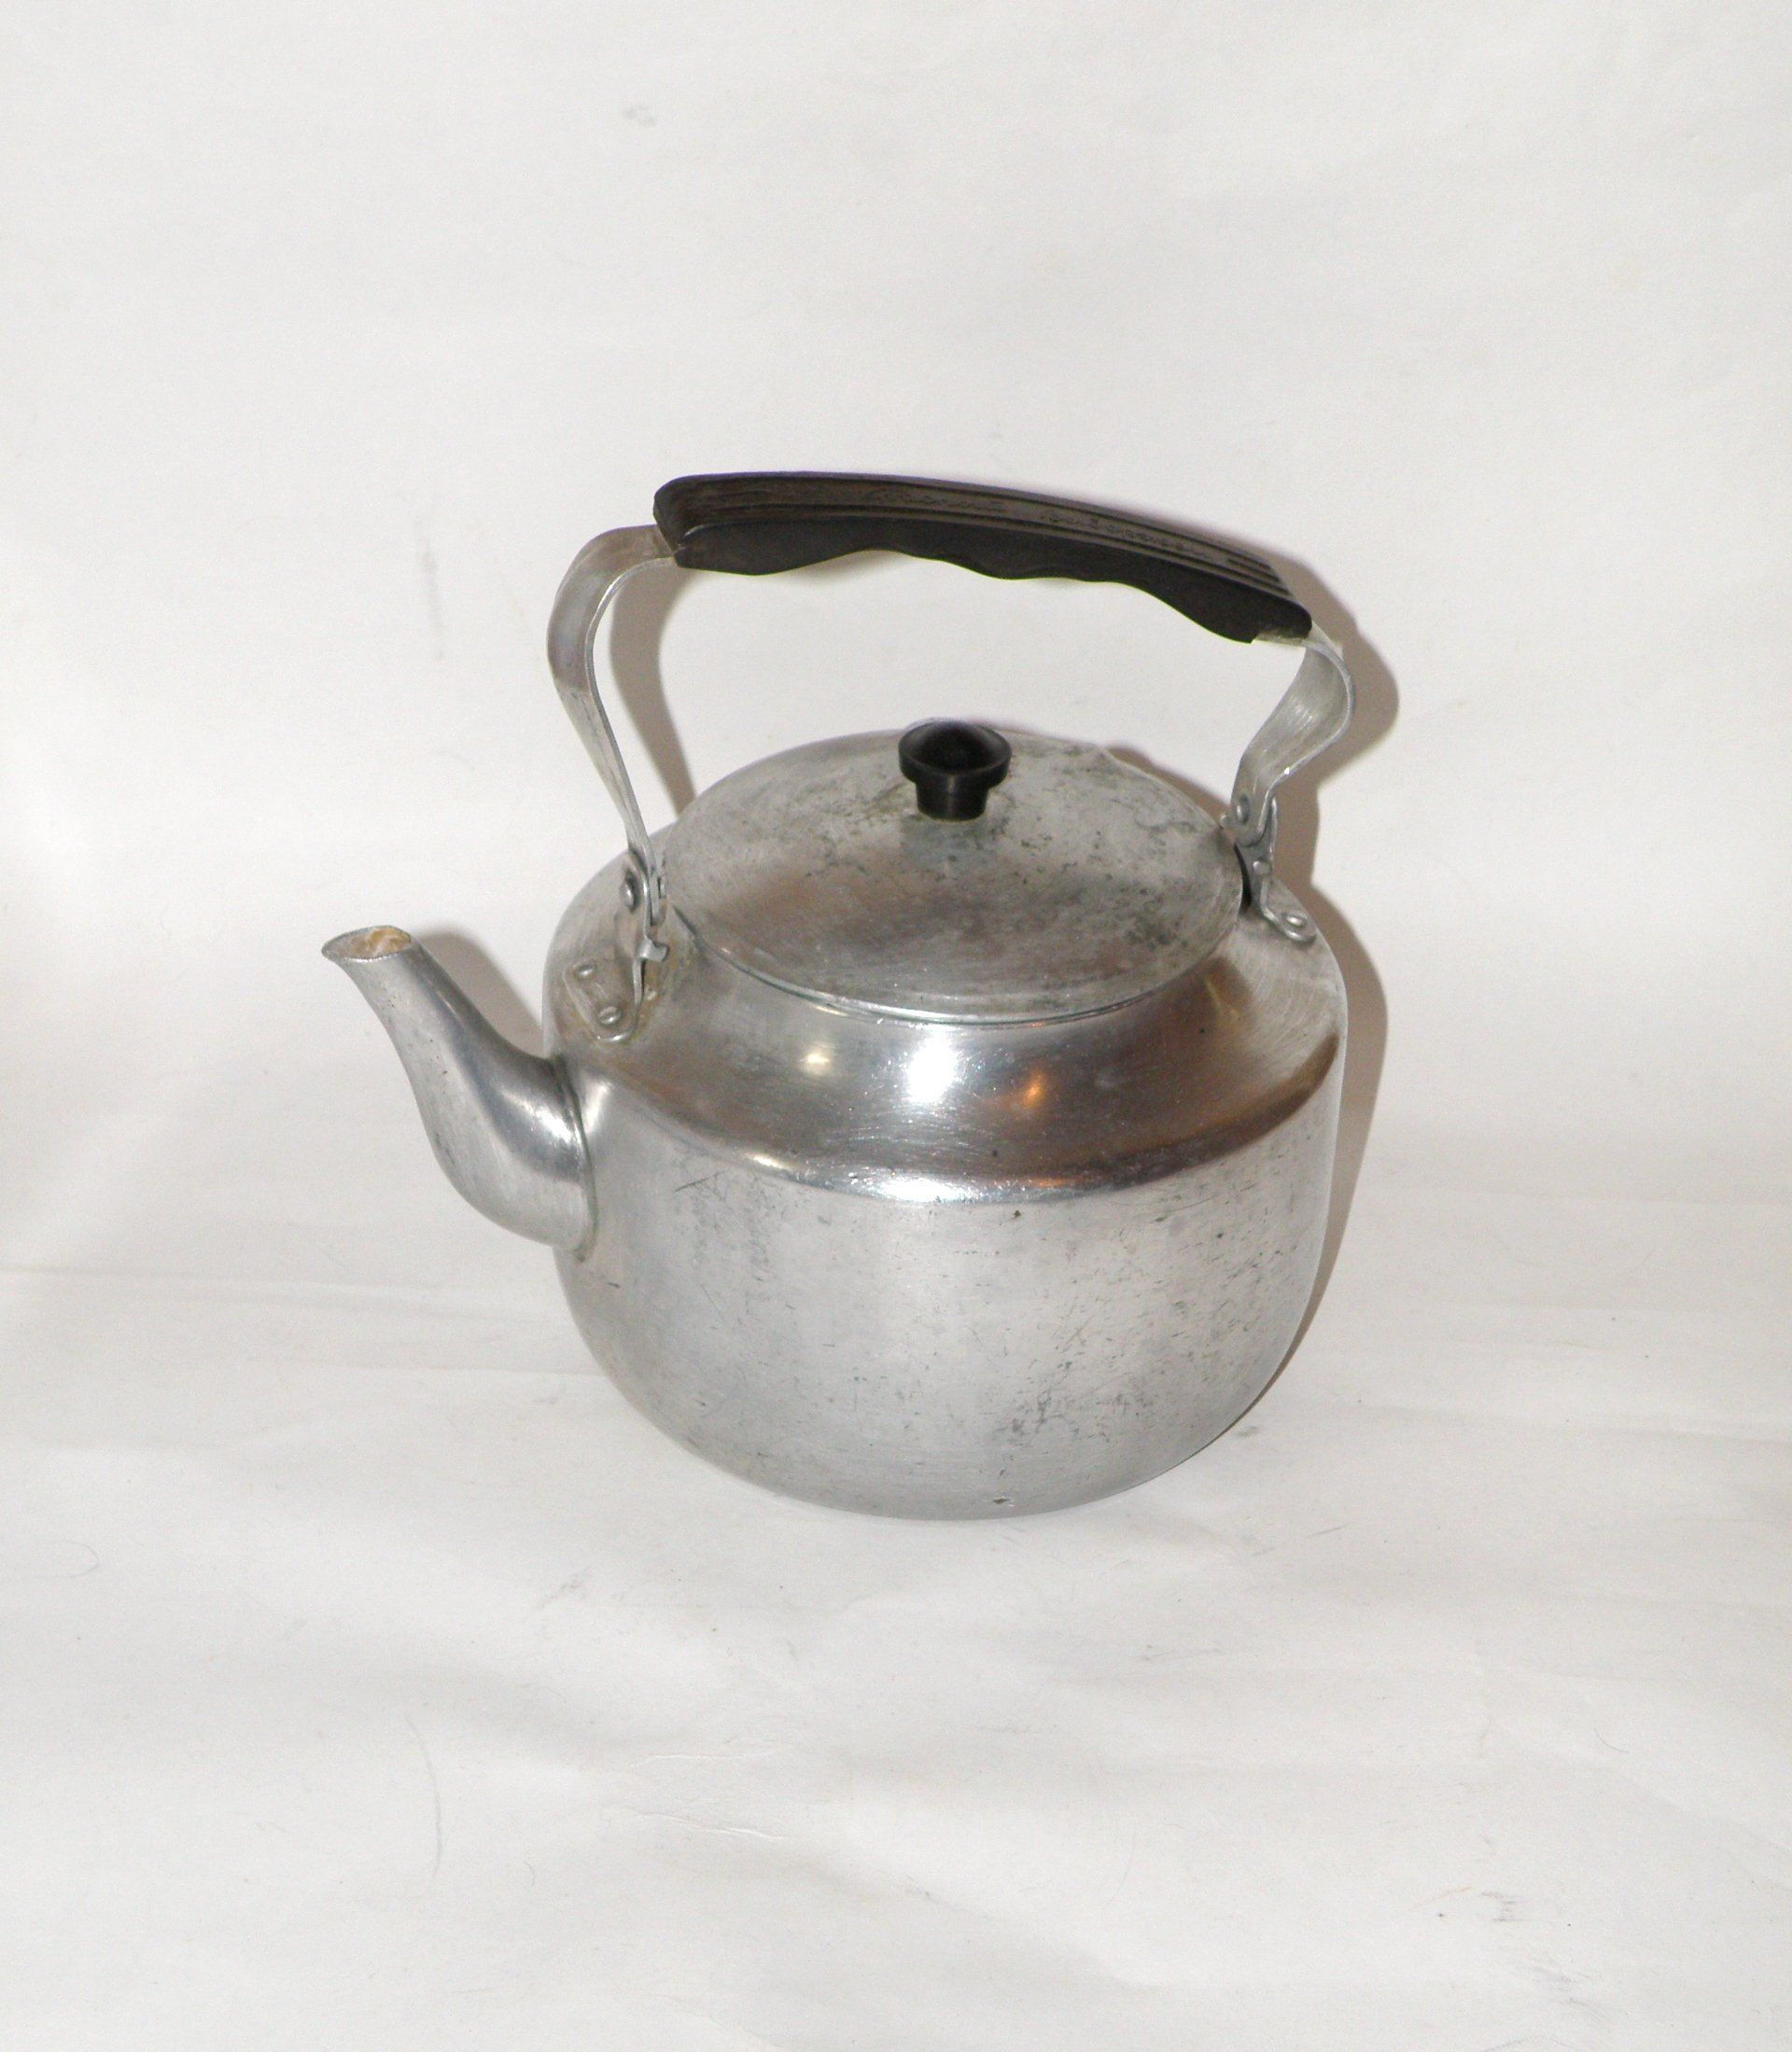 Vintage Aluminium Kettle Soviet Metal Kettle Aluminium Teapot Farmhouse Kitchen Rustic Kitchen Kettle Old Metal